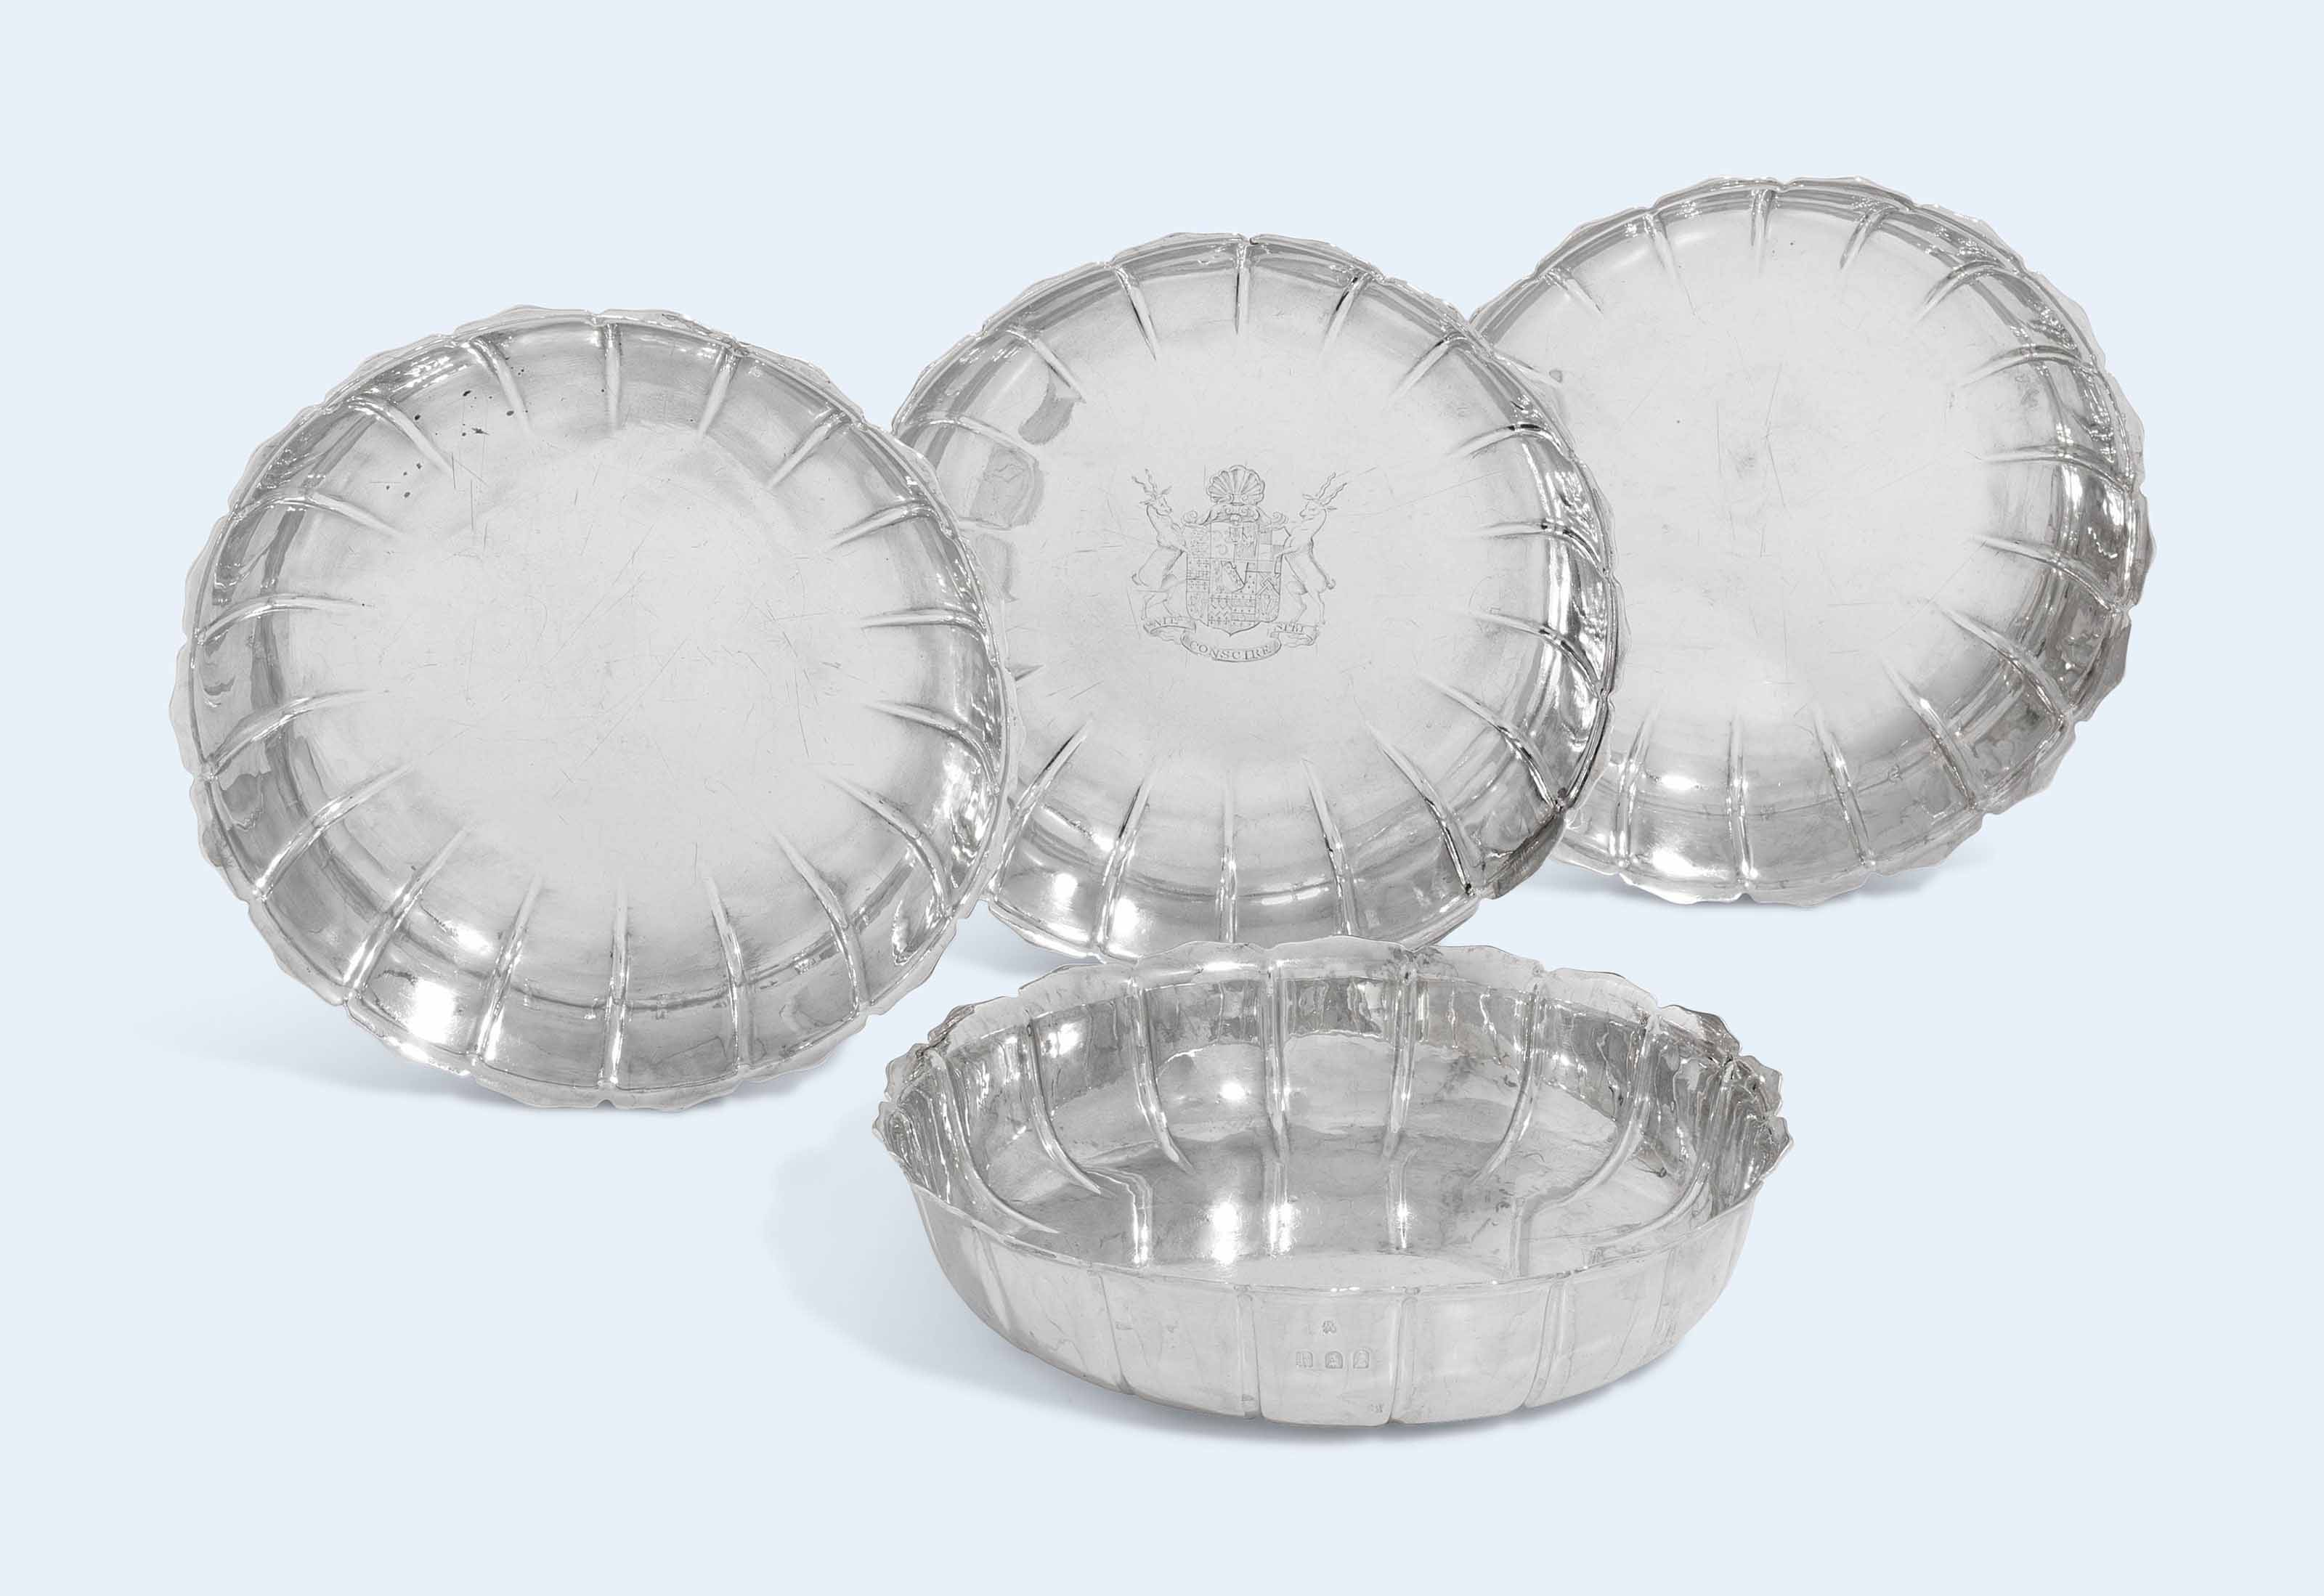 A GEORGE I SILVER STRAWBERRY-DISH AND A SET OF THREE EDWARD VII SILVER STRAWBERRY-DISHES